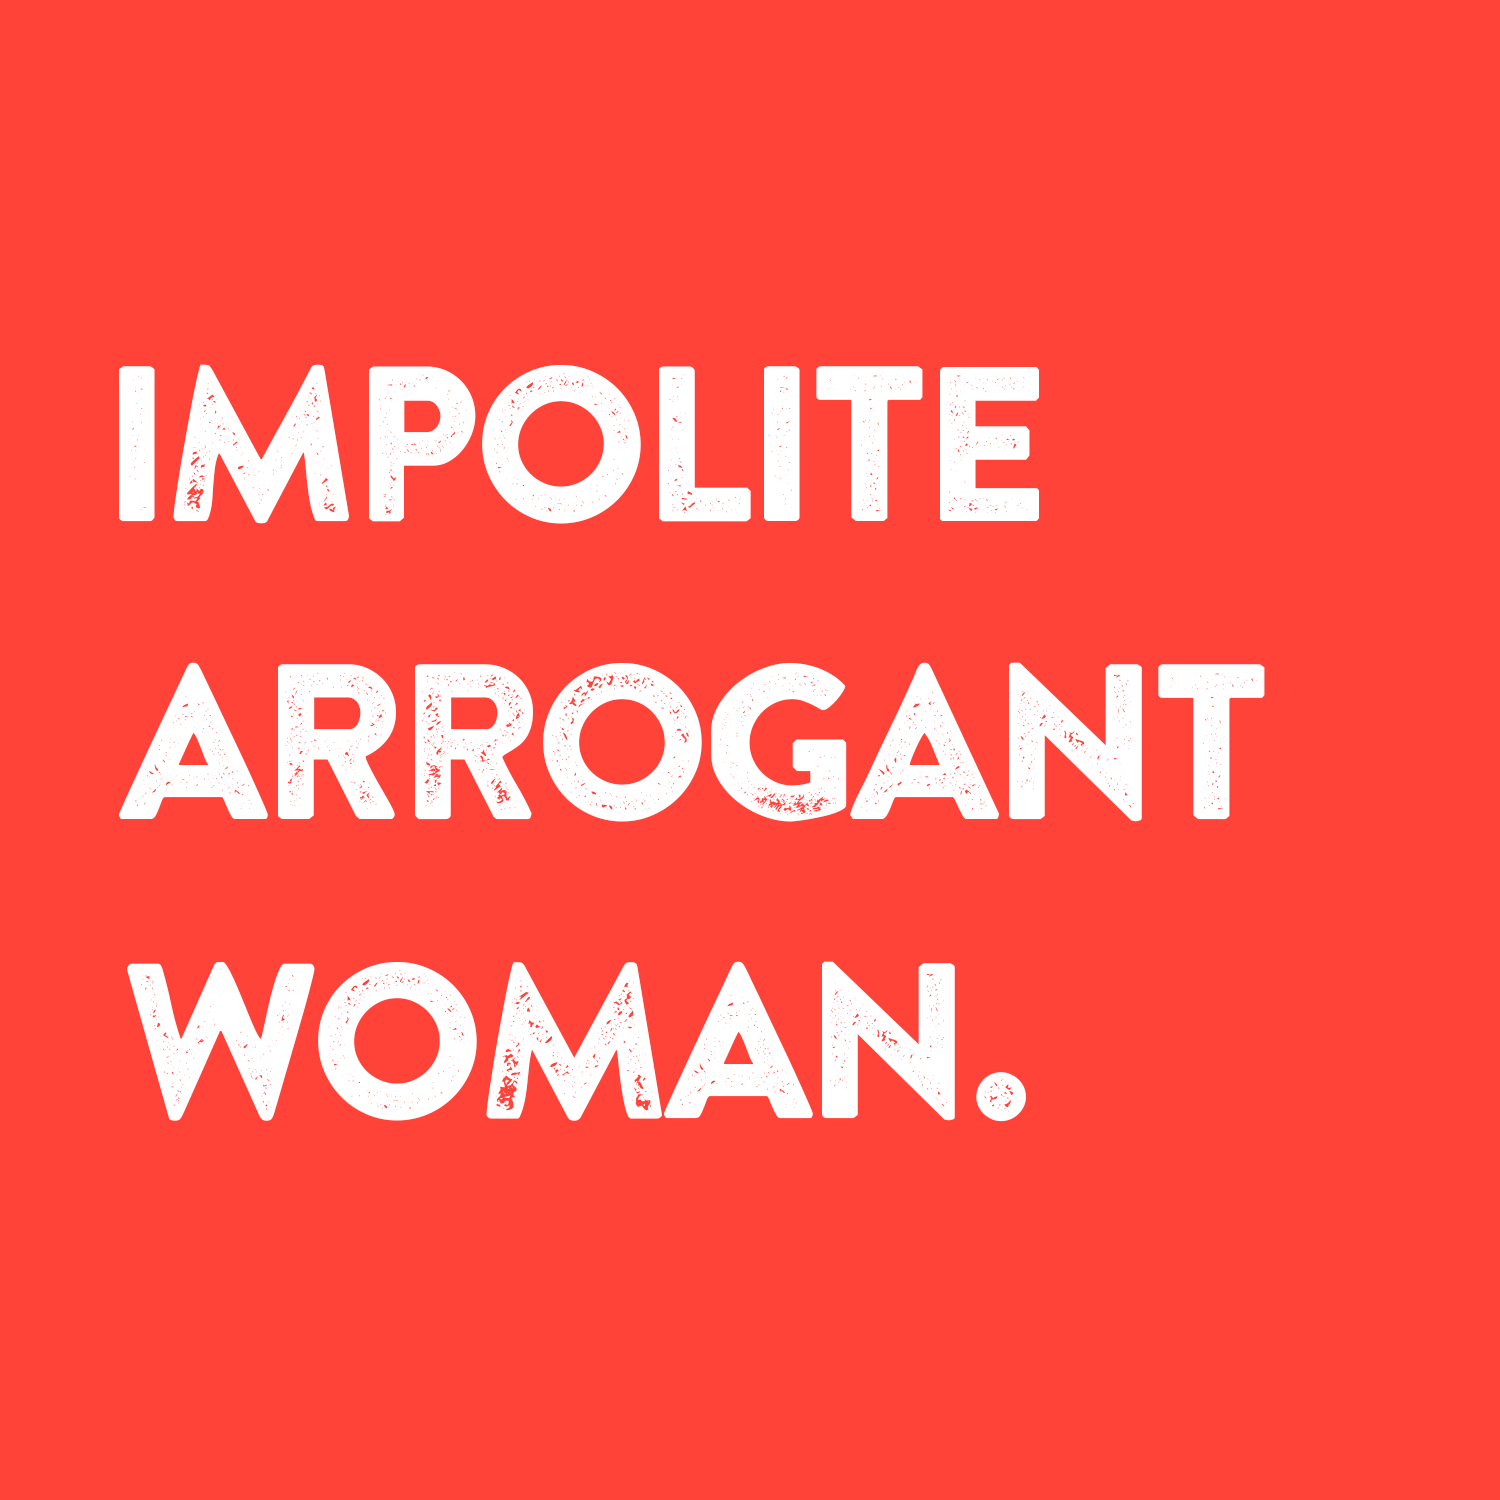 """Graphic that reads """"Impolite Arrogant Woman"""" with white text on a red background"""